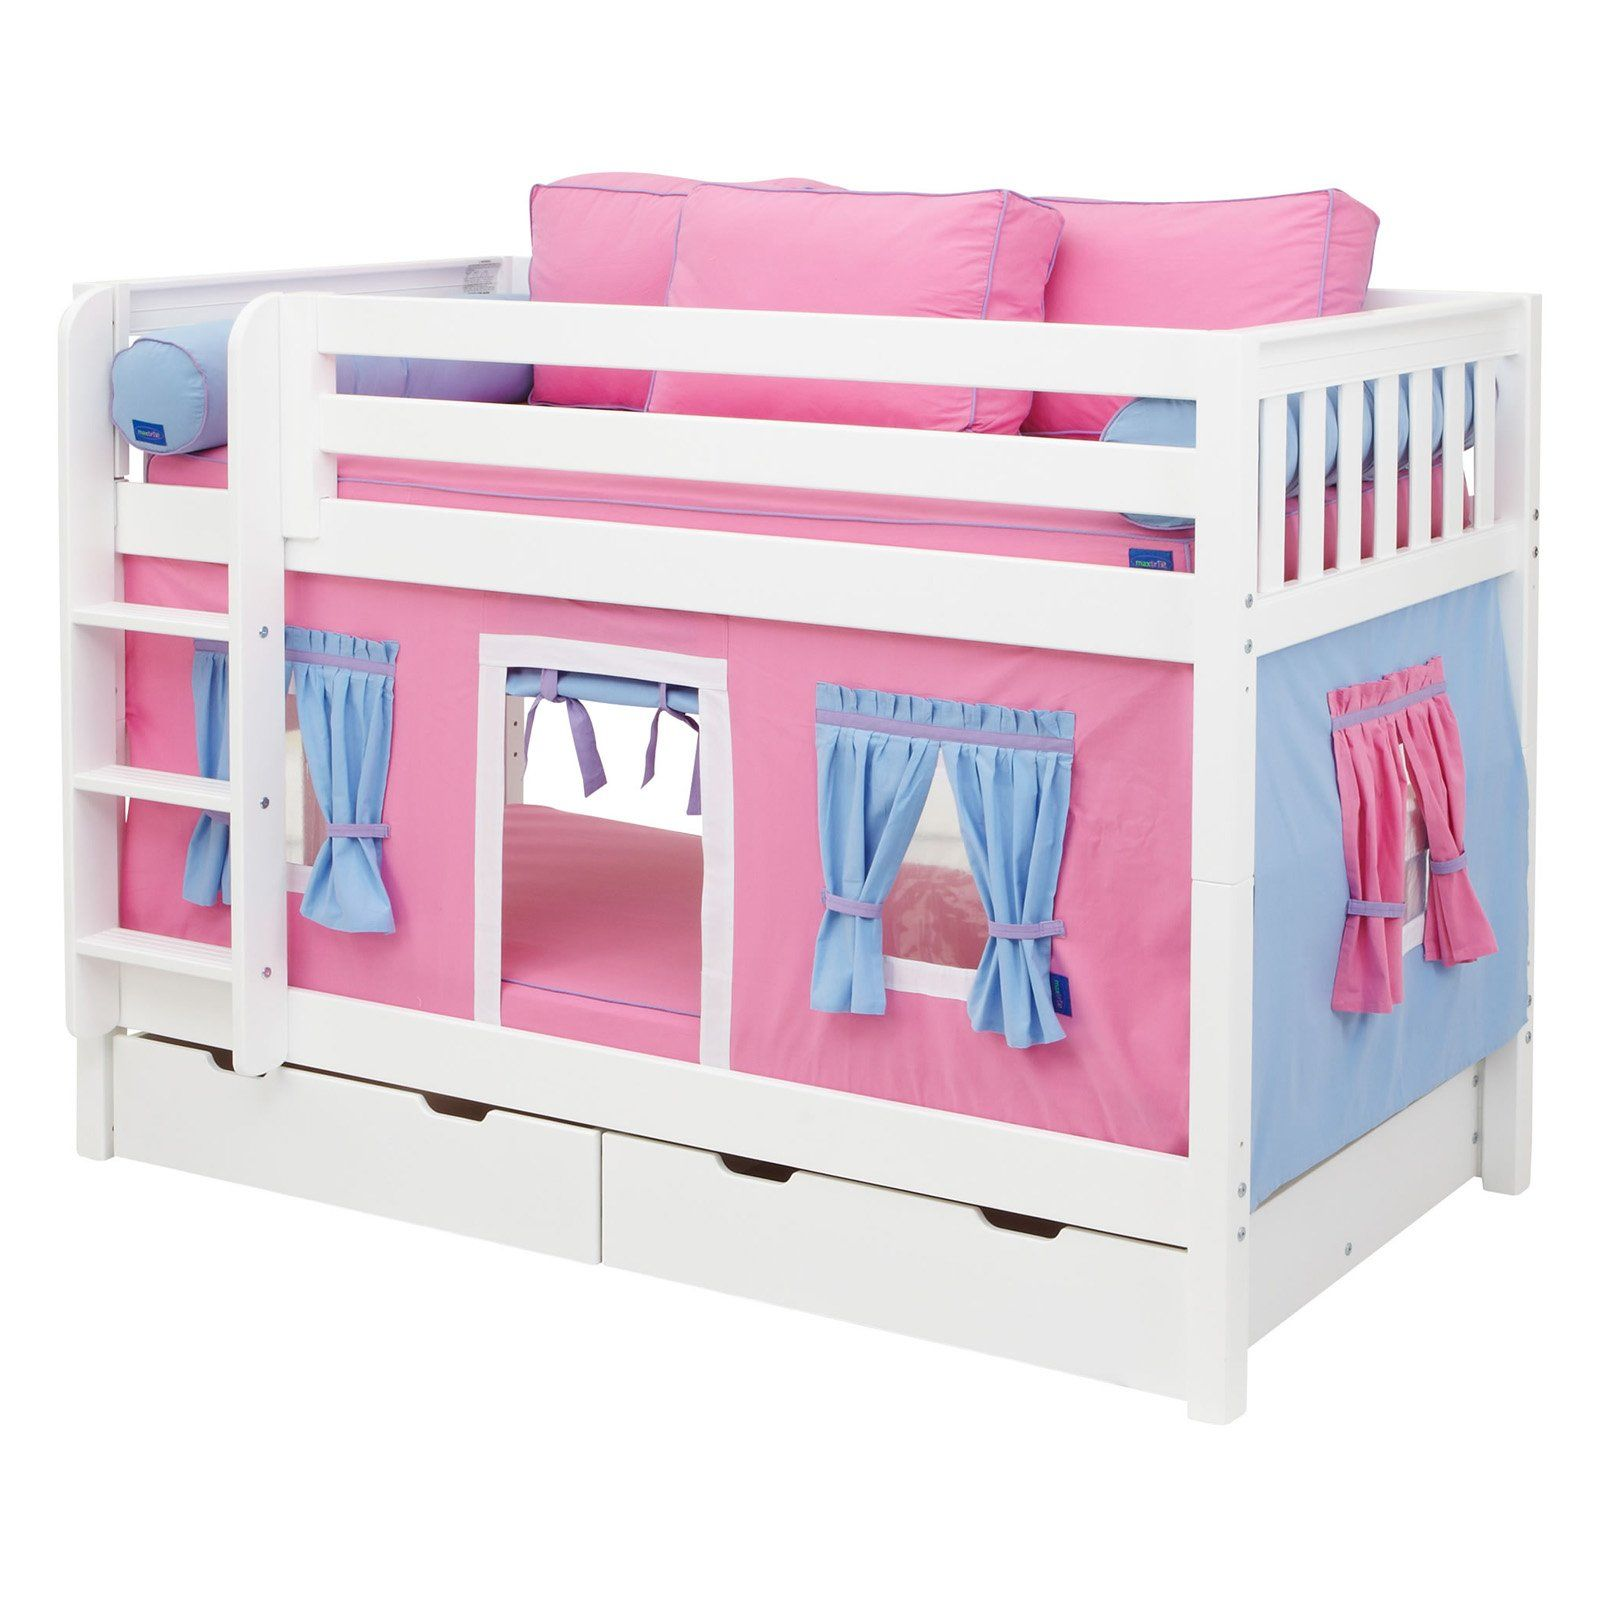 Childrens Twin Bed Tents & Cottage Bed Tents Twin Beds Girls